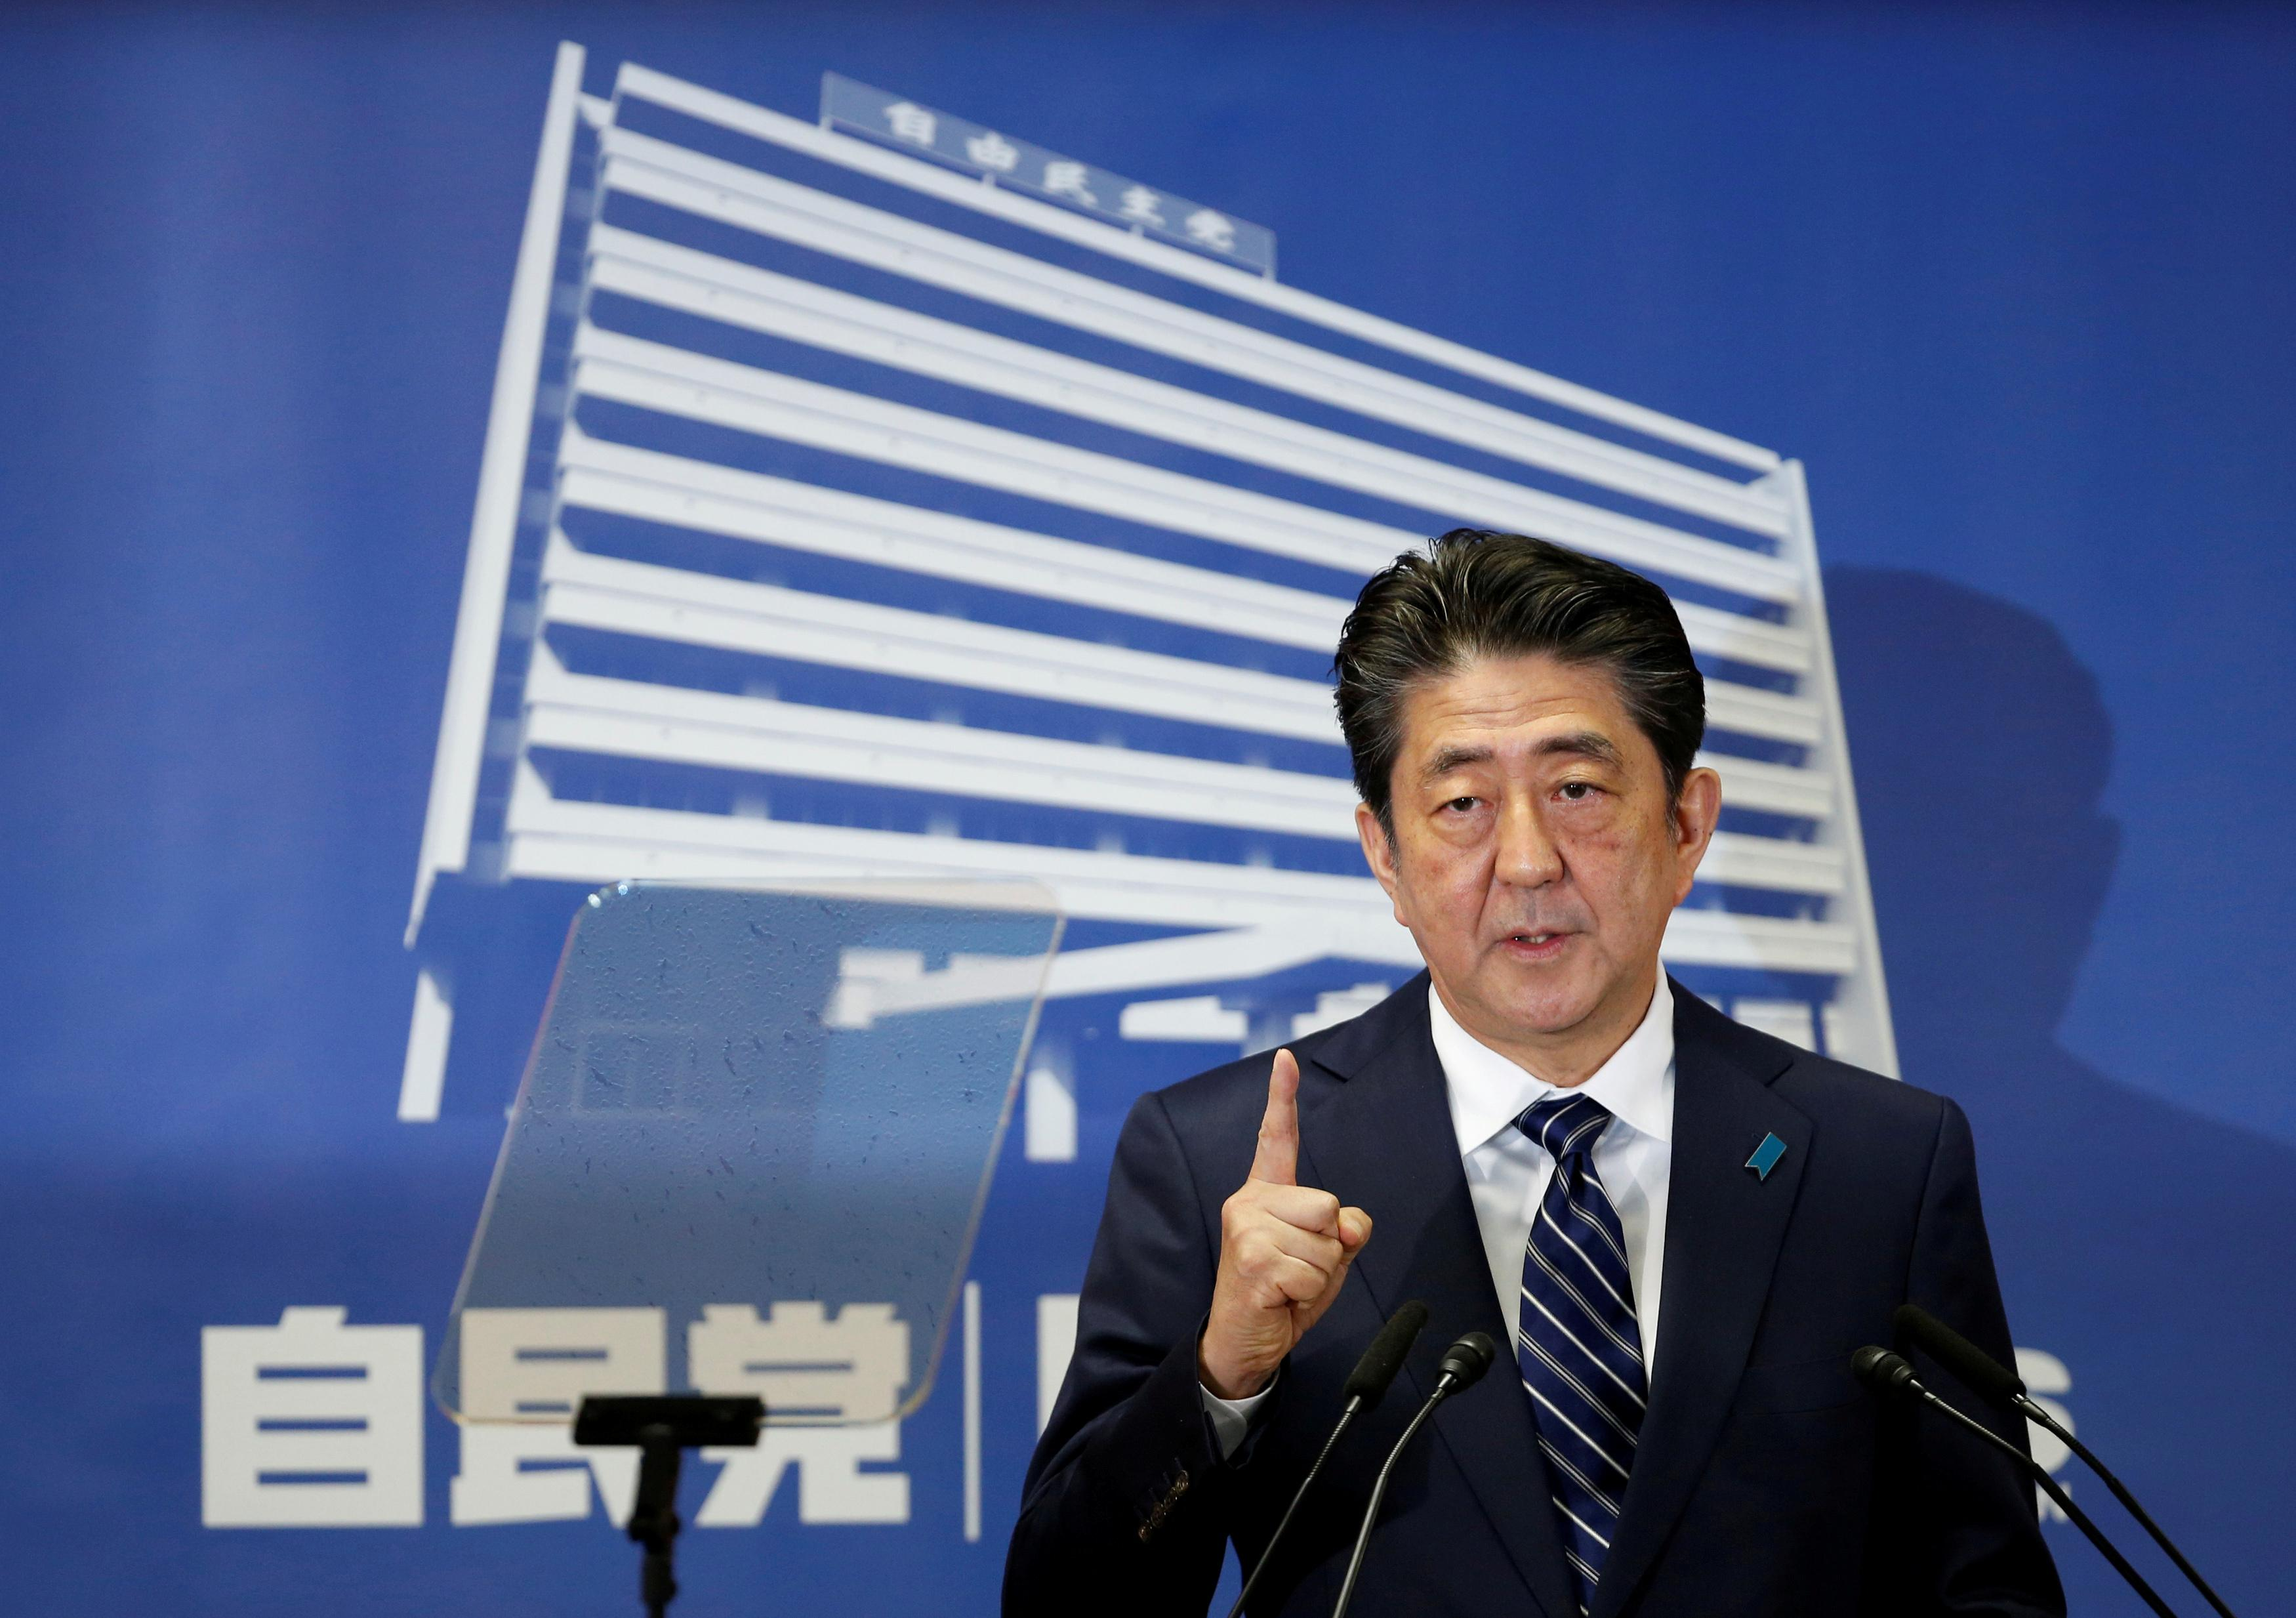 Japan readies for July 21 upper house election as PM recalls past...